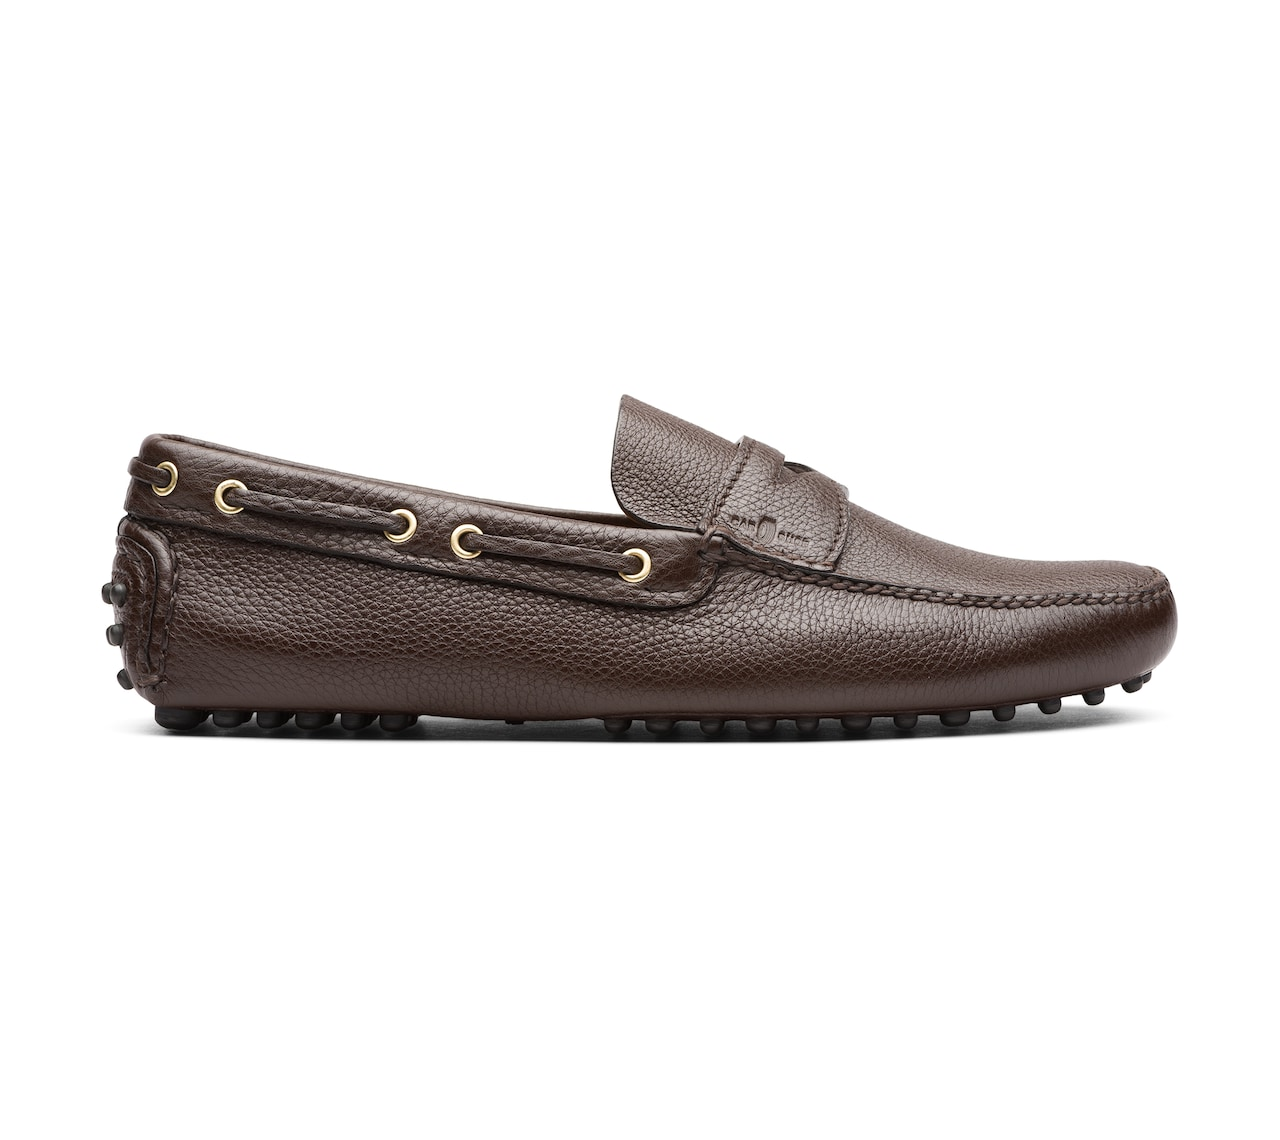 DRIVING SHOES PELLE MARTELLATA MORBIDA MARRONE